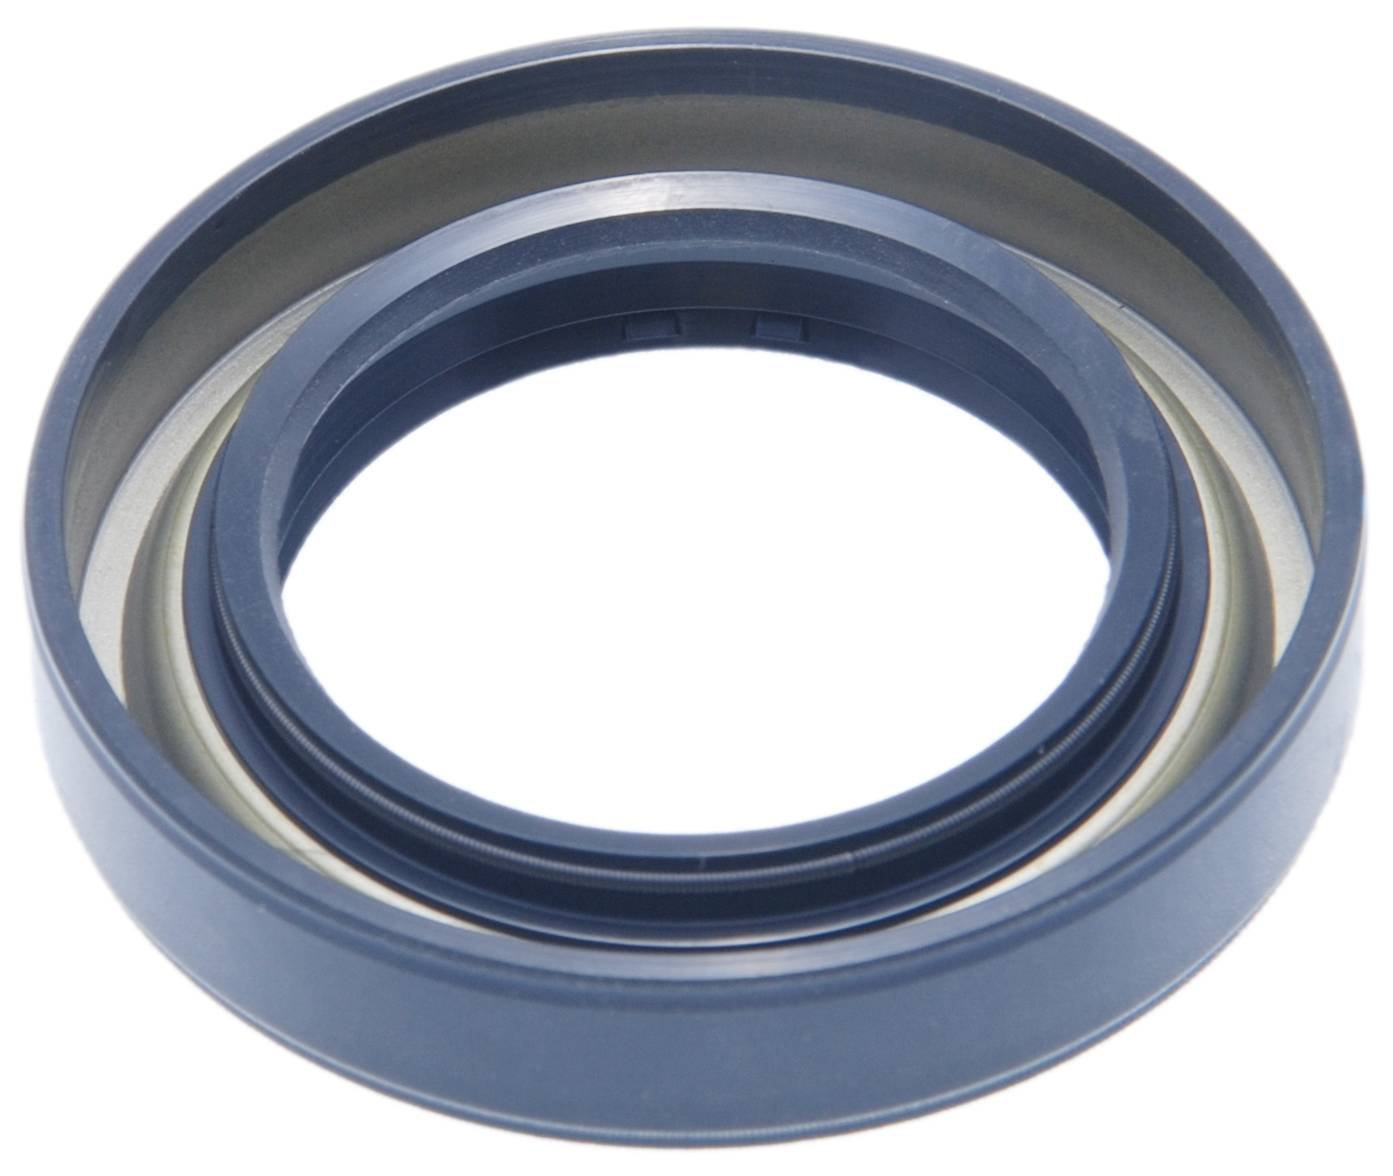 Toyota Sienna Service Manual: Extension housing oil seal